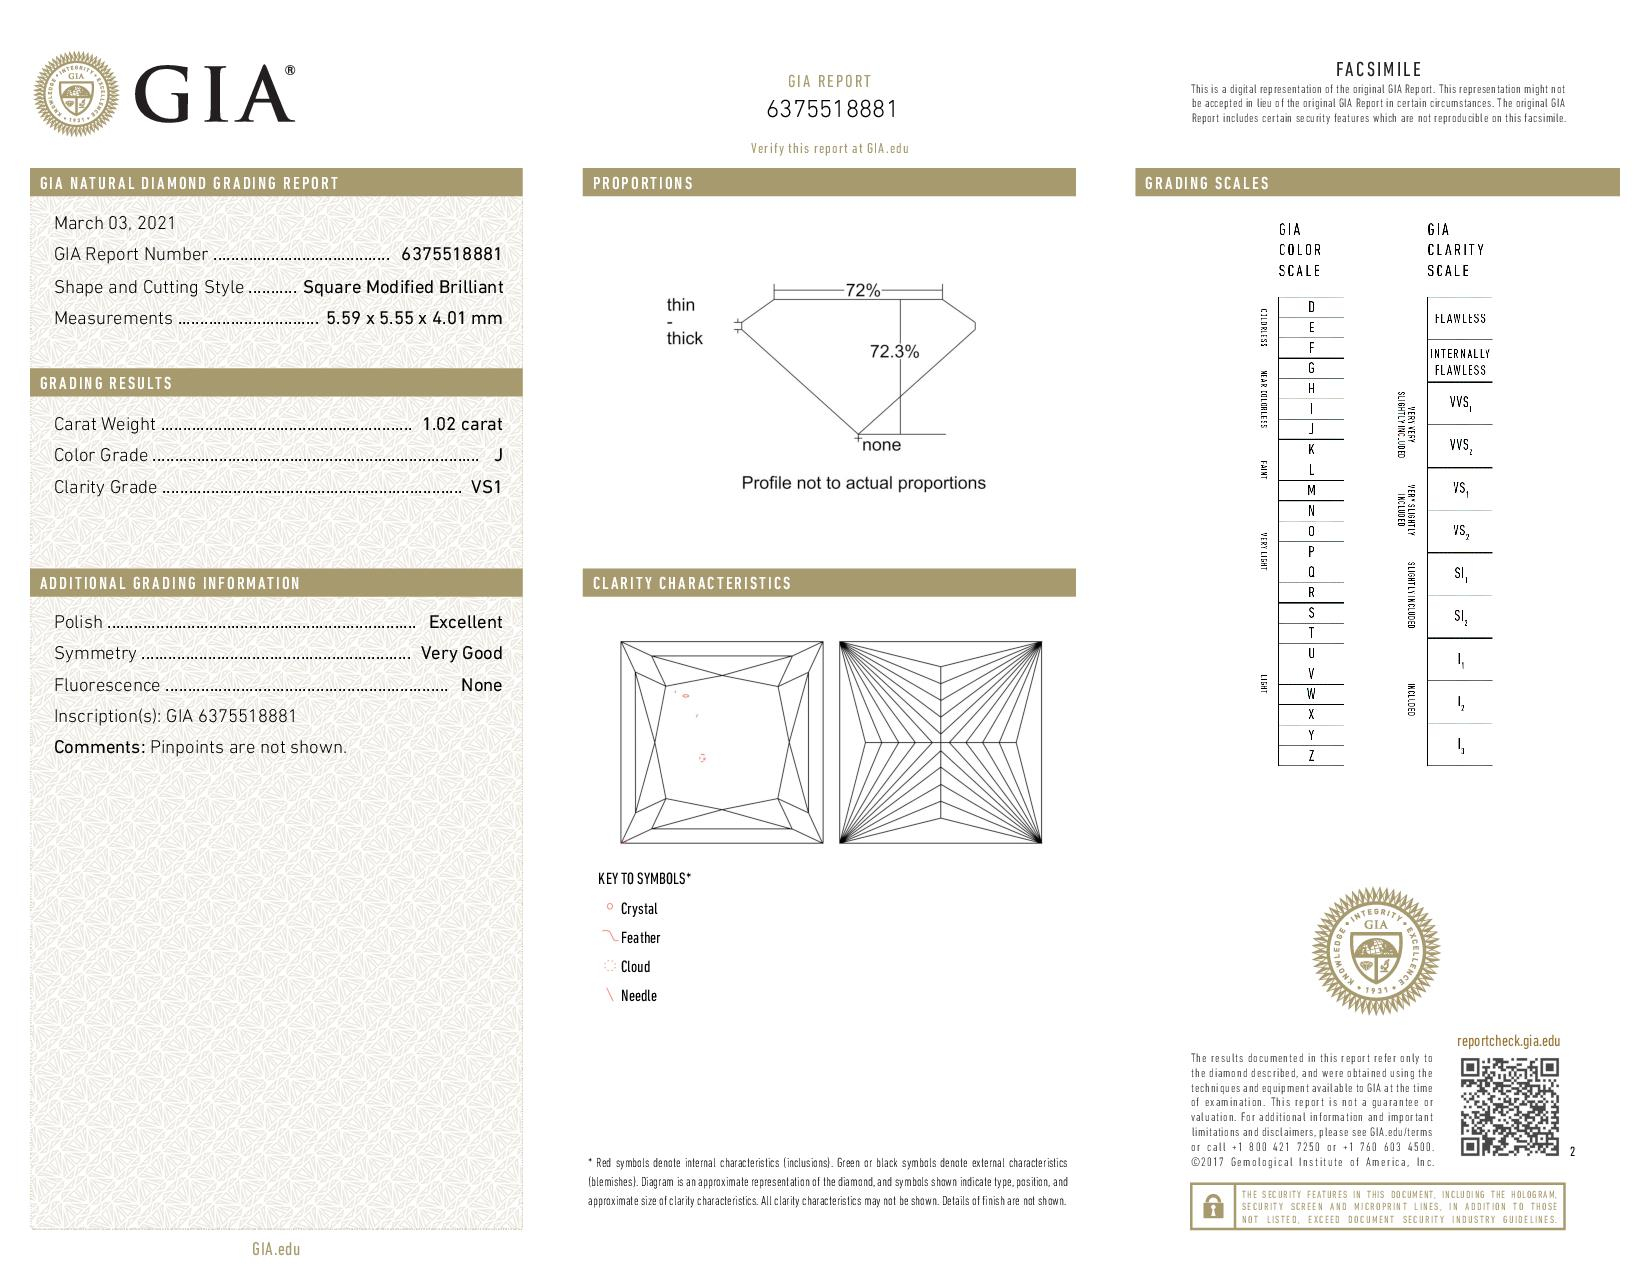 This is a 1.02 carat princess shape, J color, VS1 clarity natural diamond accompanied by a GIA grading report.